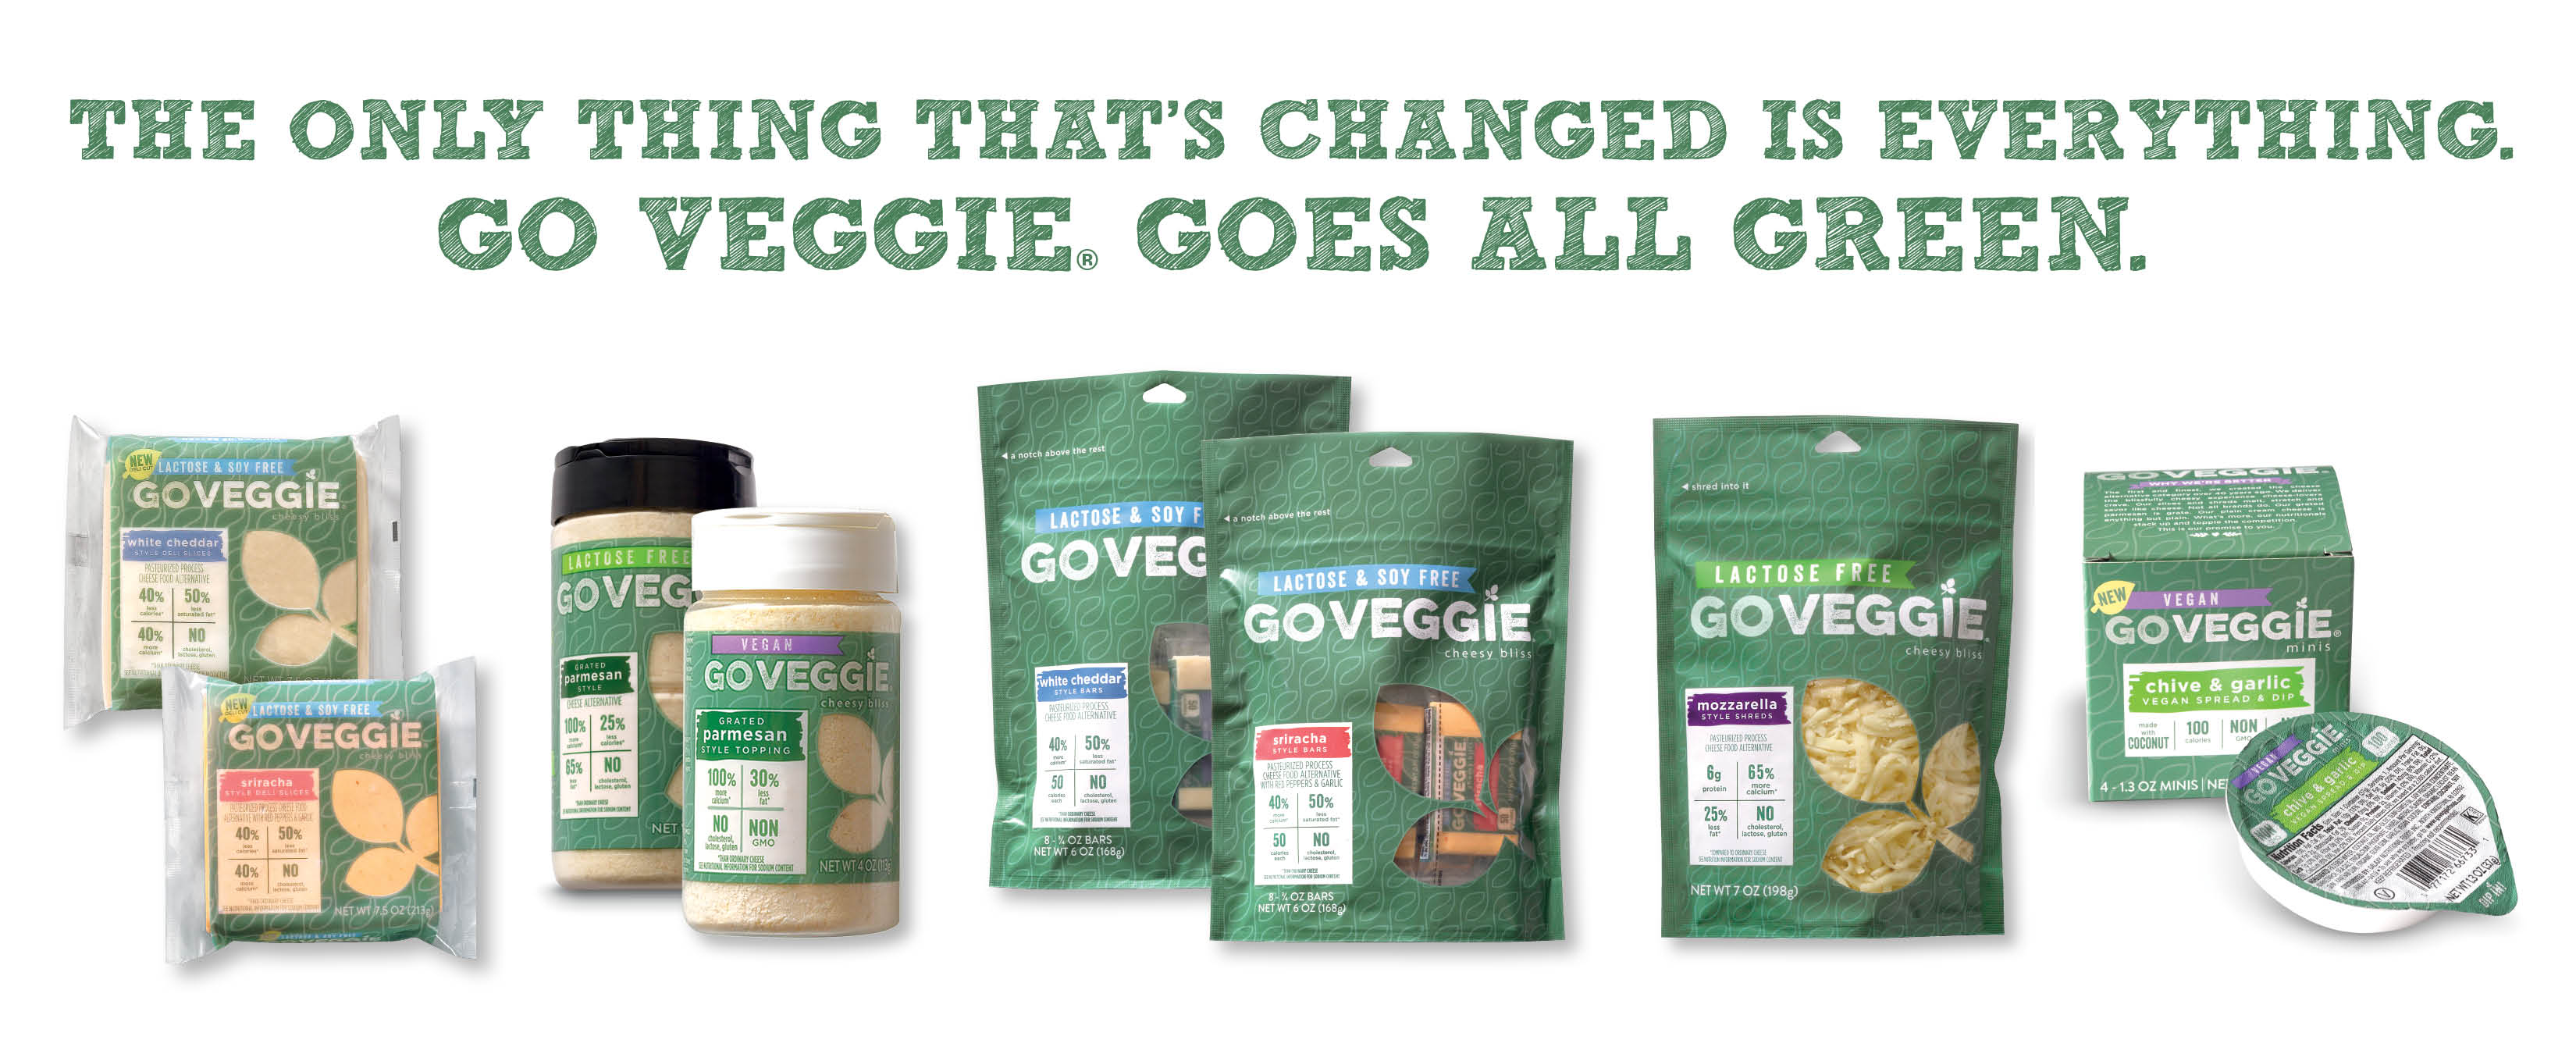 The Only Thing That's Changed is Everything: GO VEGGIE® Brand Goes All Green